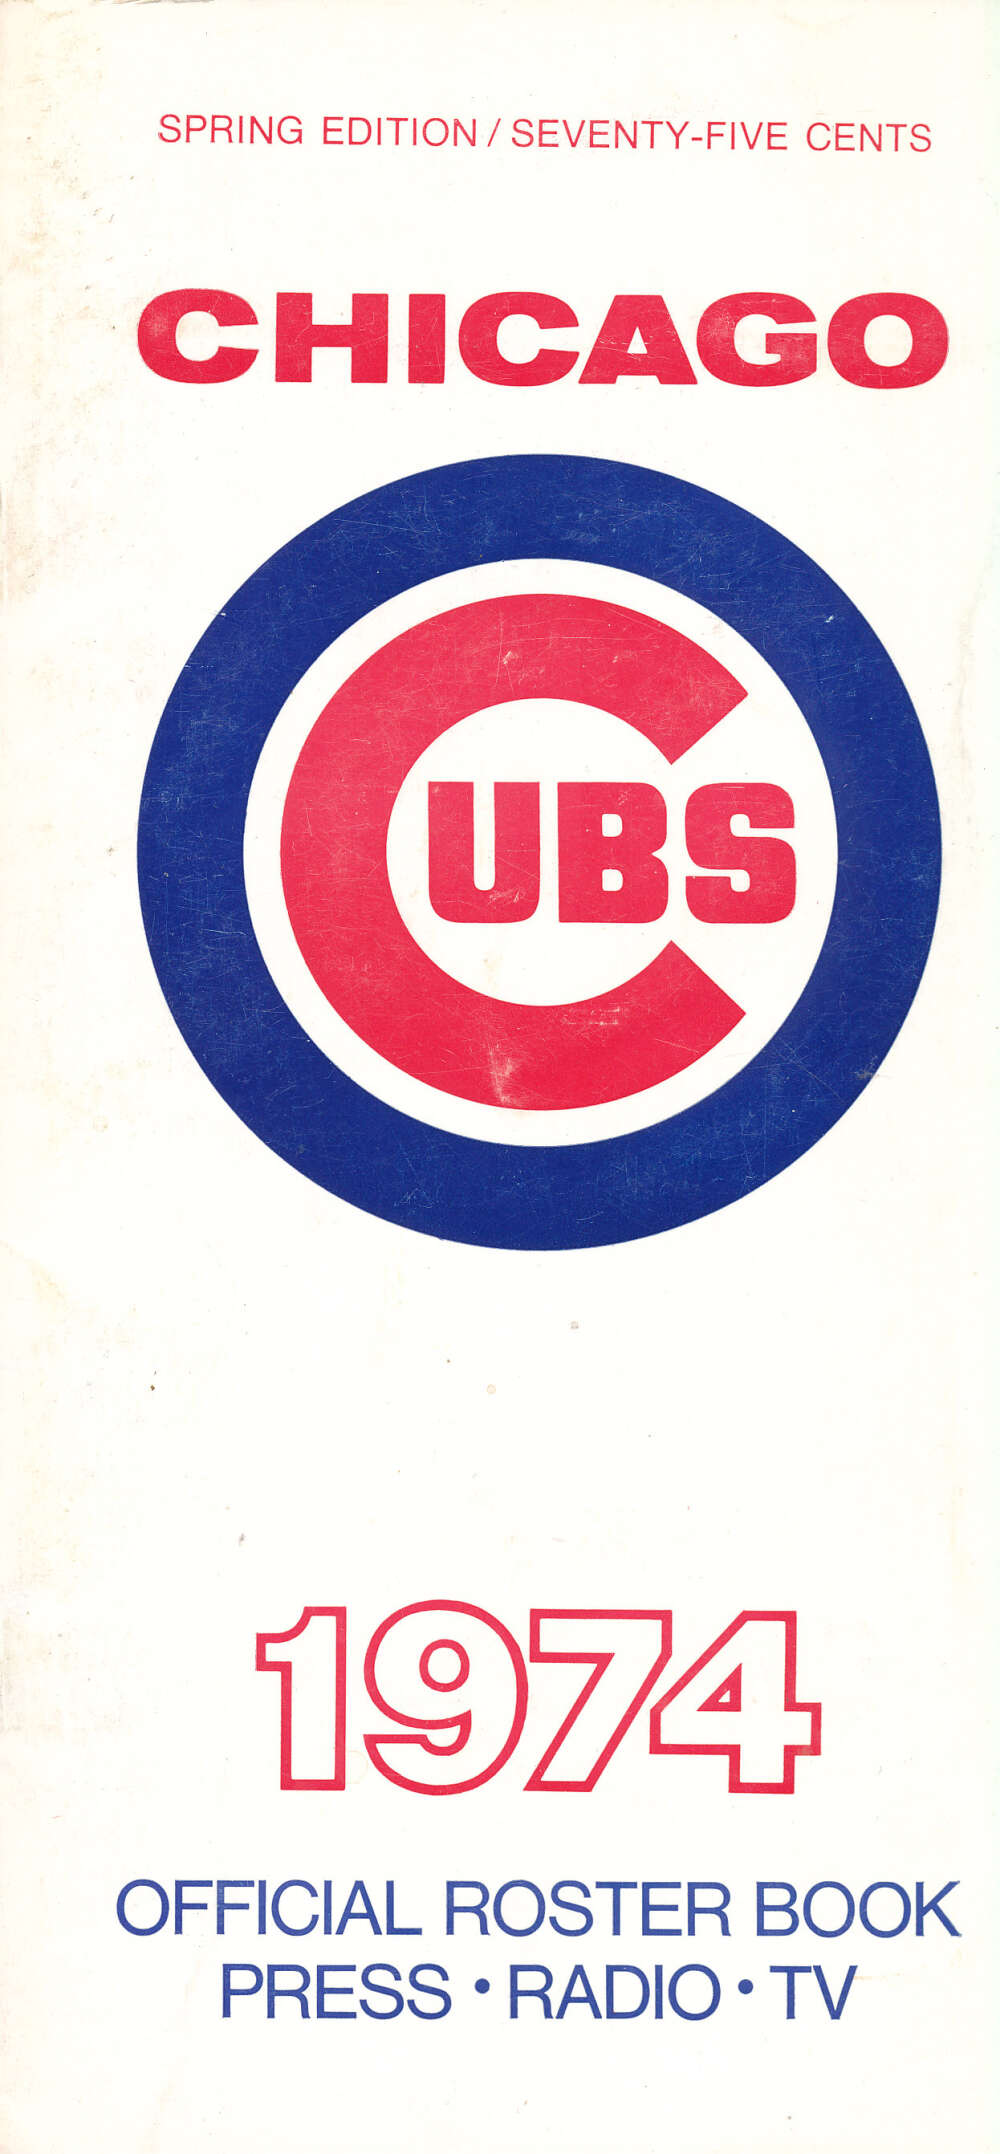 1974 chicago cubs spring edition Media Guide bx14